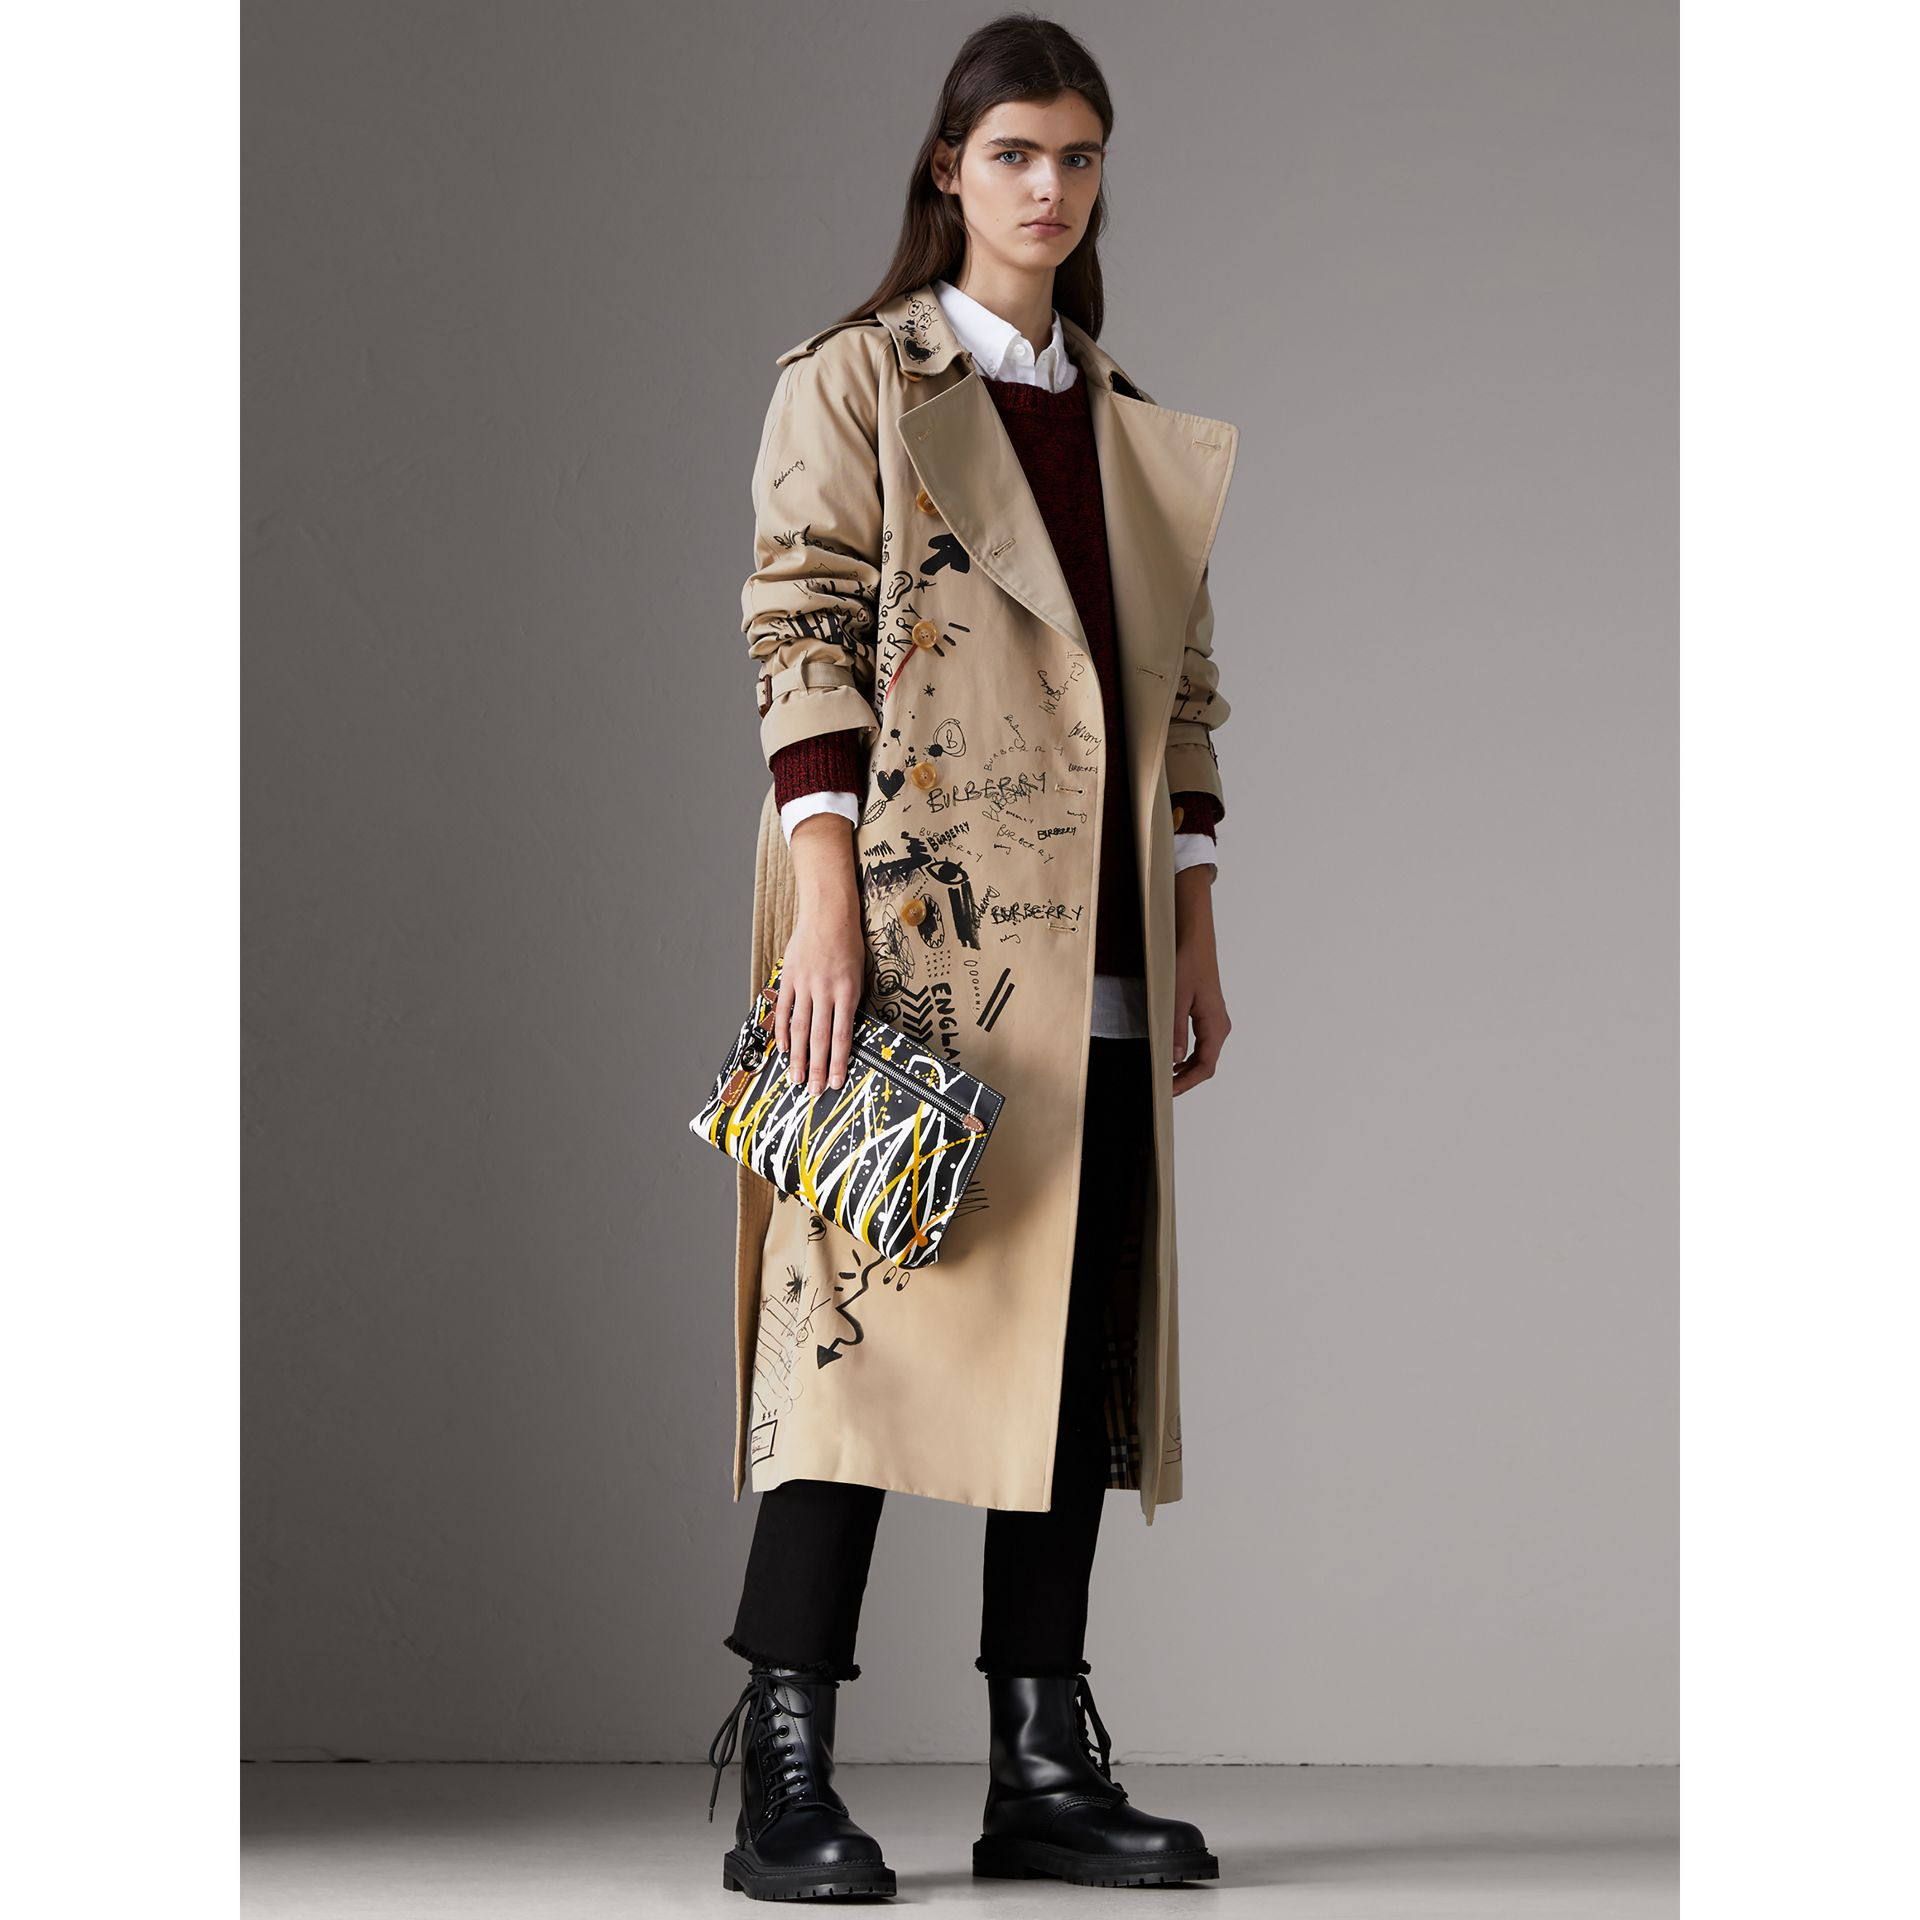 Splash Trench Leather Pouch in Black/tan - Women | Burberry Hong Kong - gallery image 2